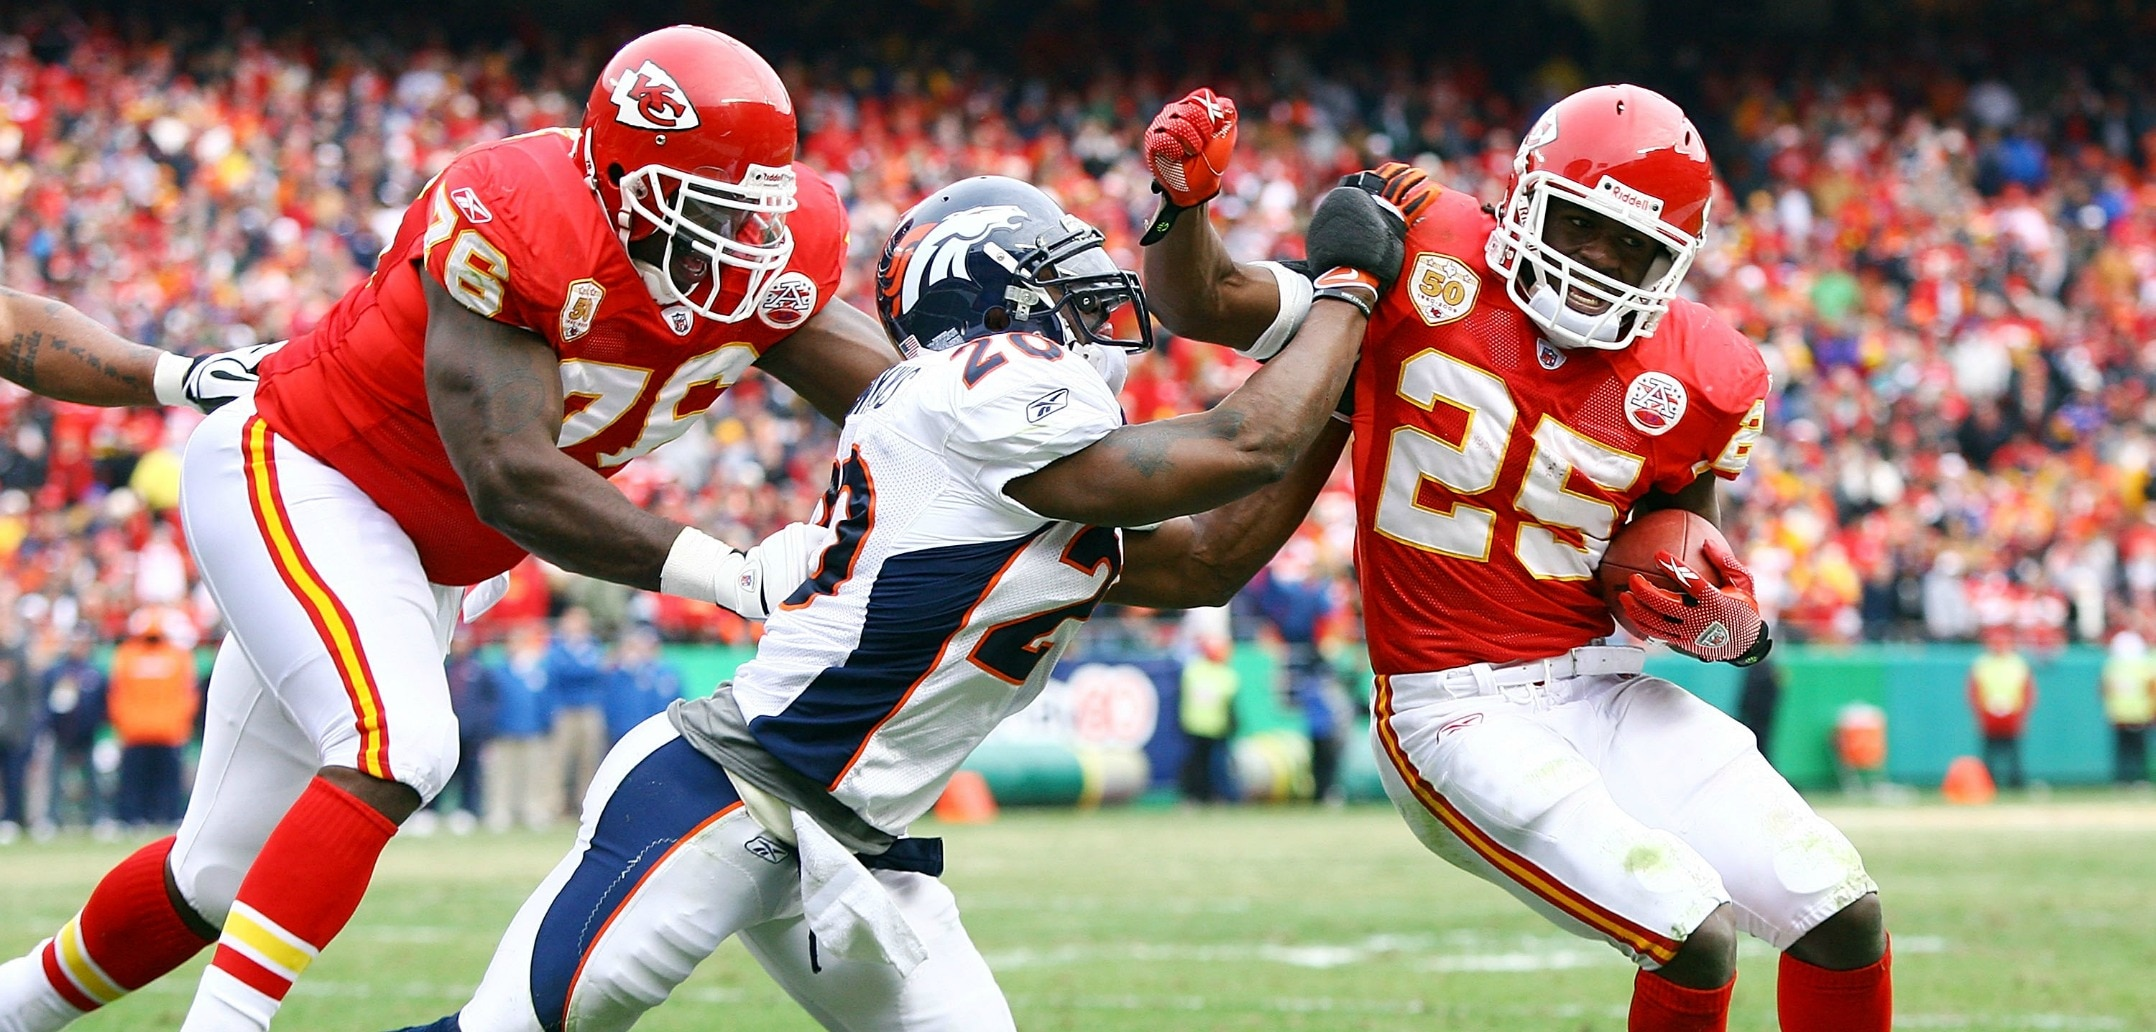 Courtesy of USA Today; Charles has taken over for Adrian Peterson as most valuable NFL running back.